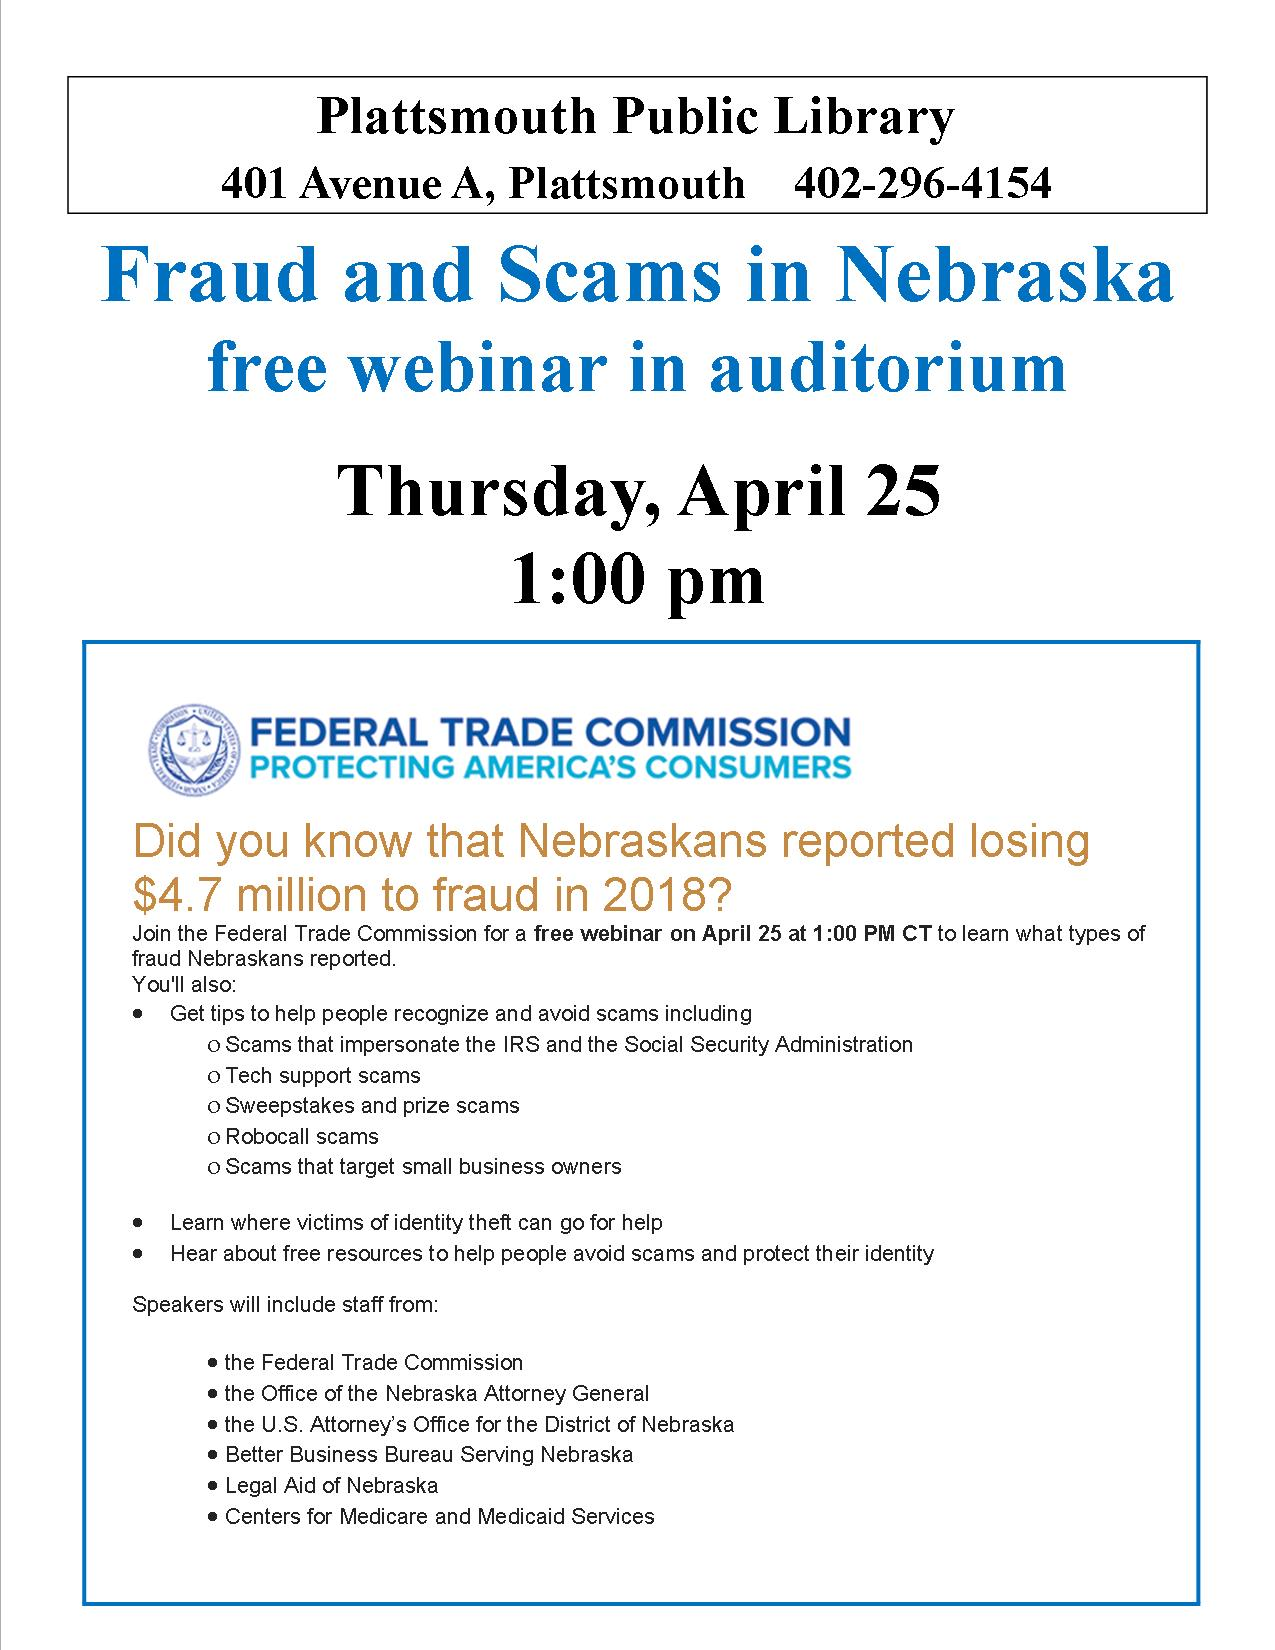 Fraud and Scams webinar